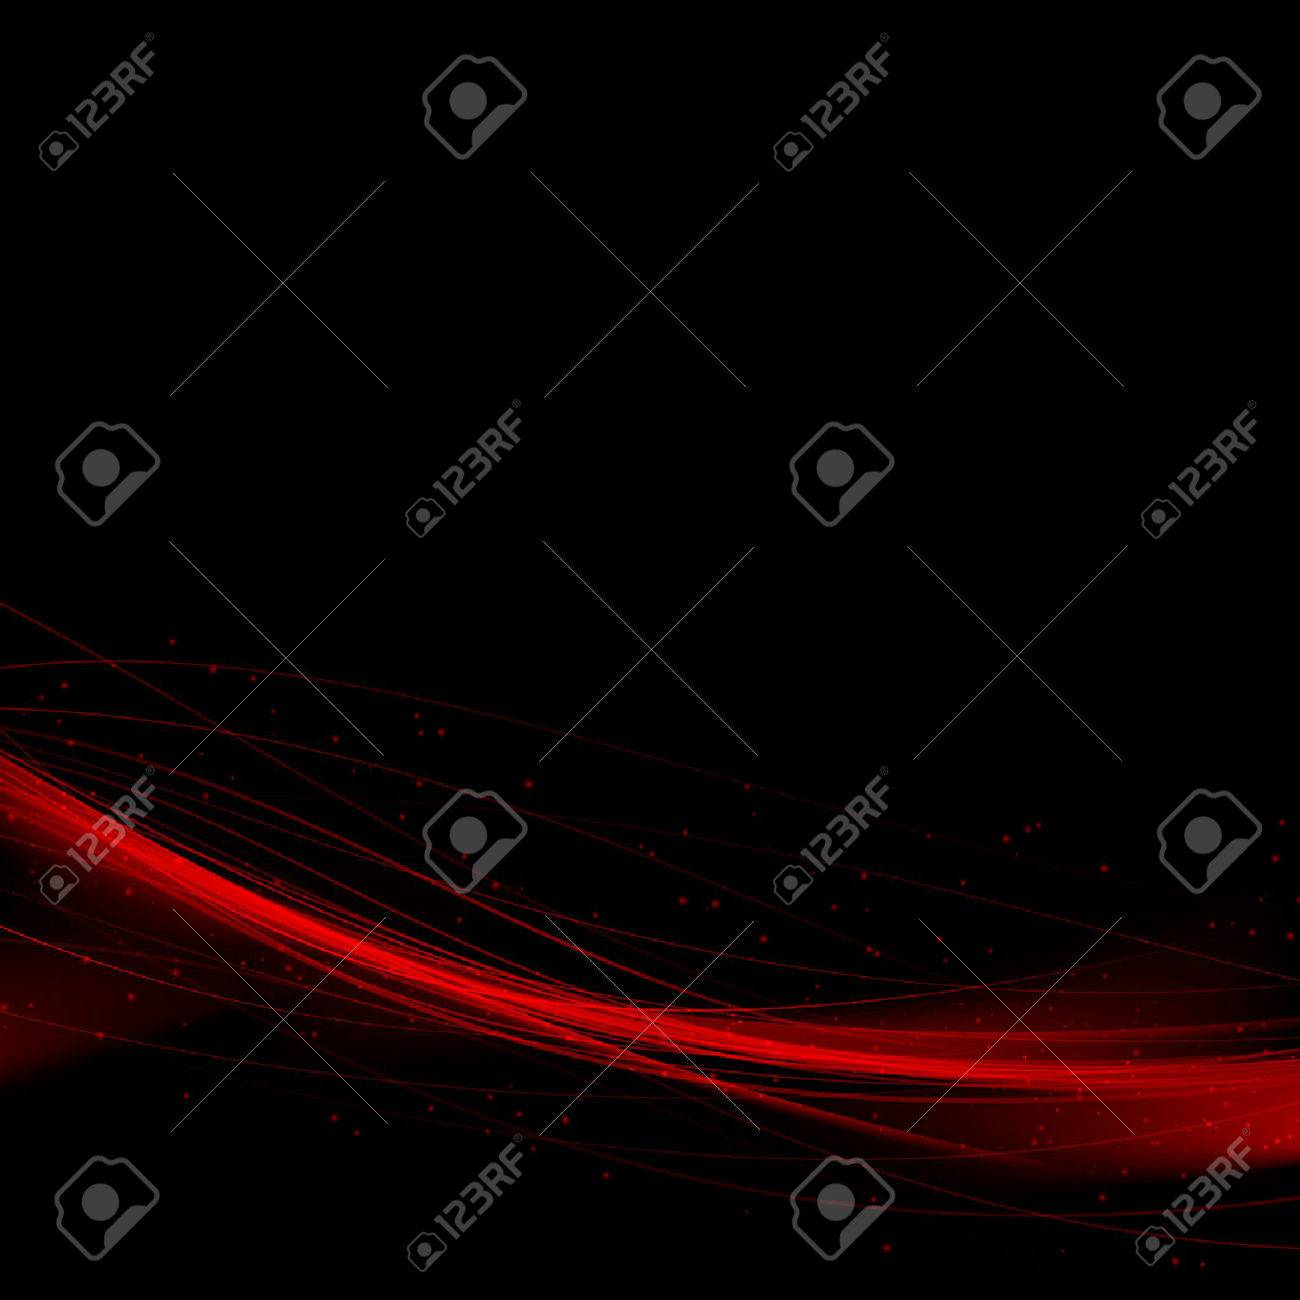 Bright red speed swoosh abstract lines background. Vector illustration - 36991024